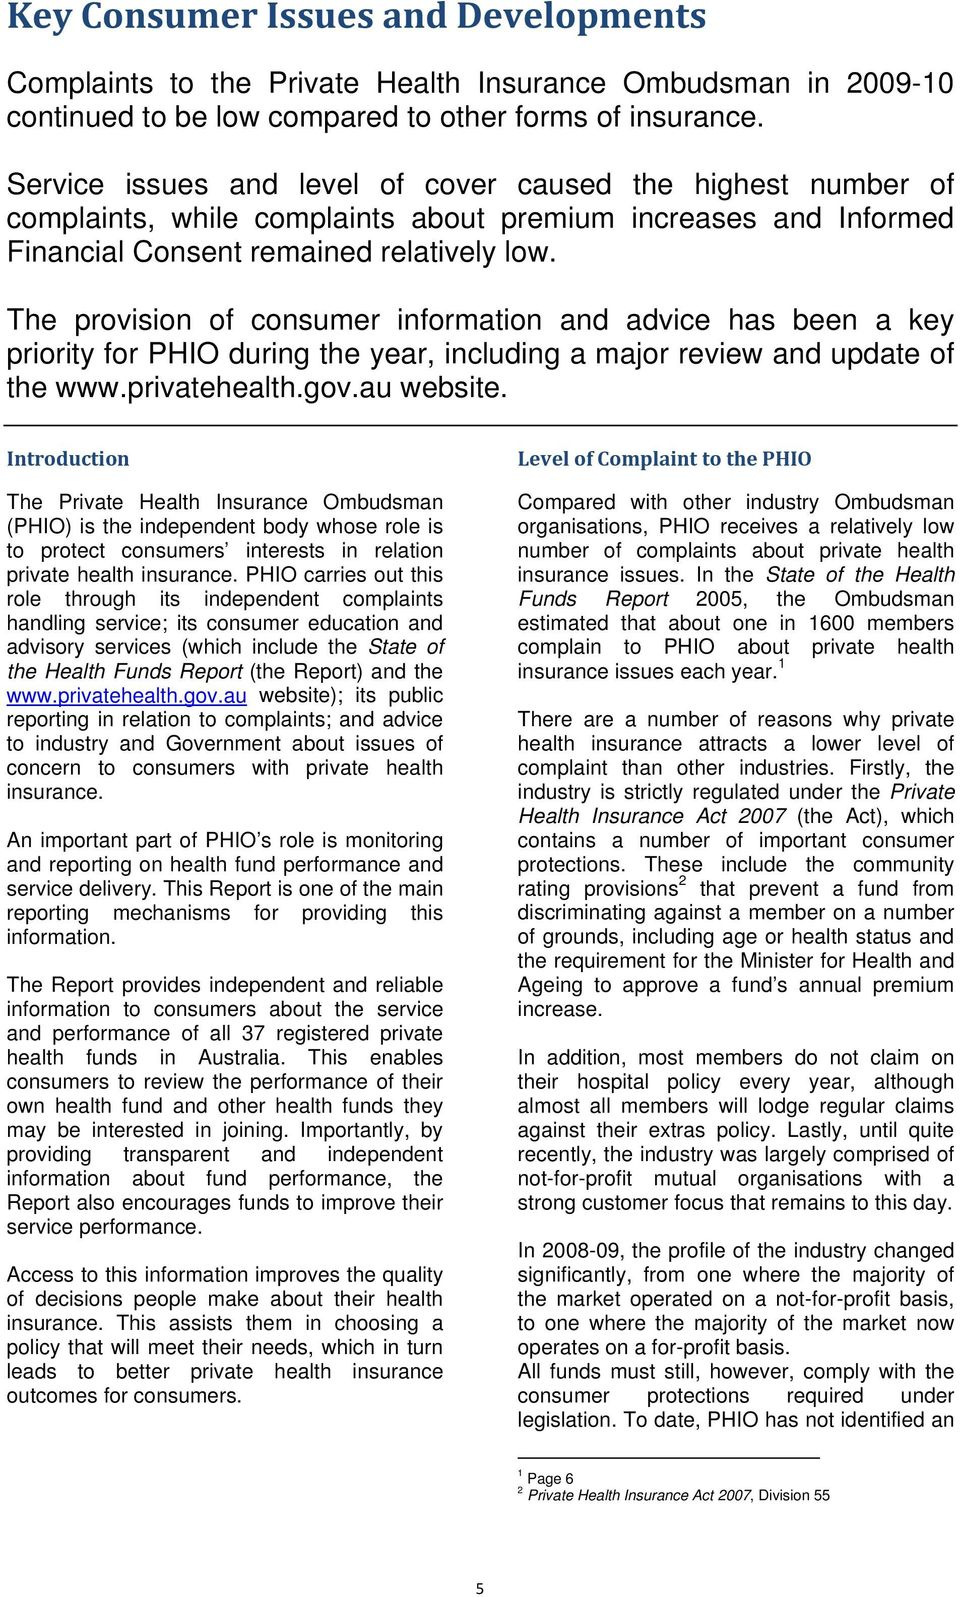 The provision of consumer information and advice has been a key priority for PHIO during the year, including a major review and update of the www.privatehealth.gov.au website.